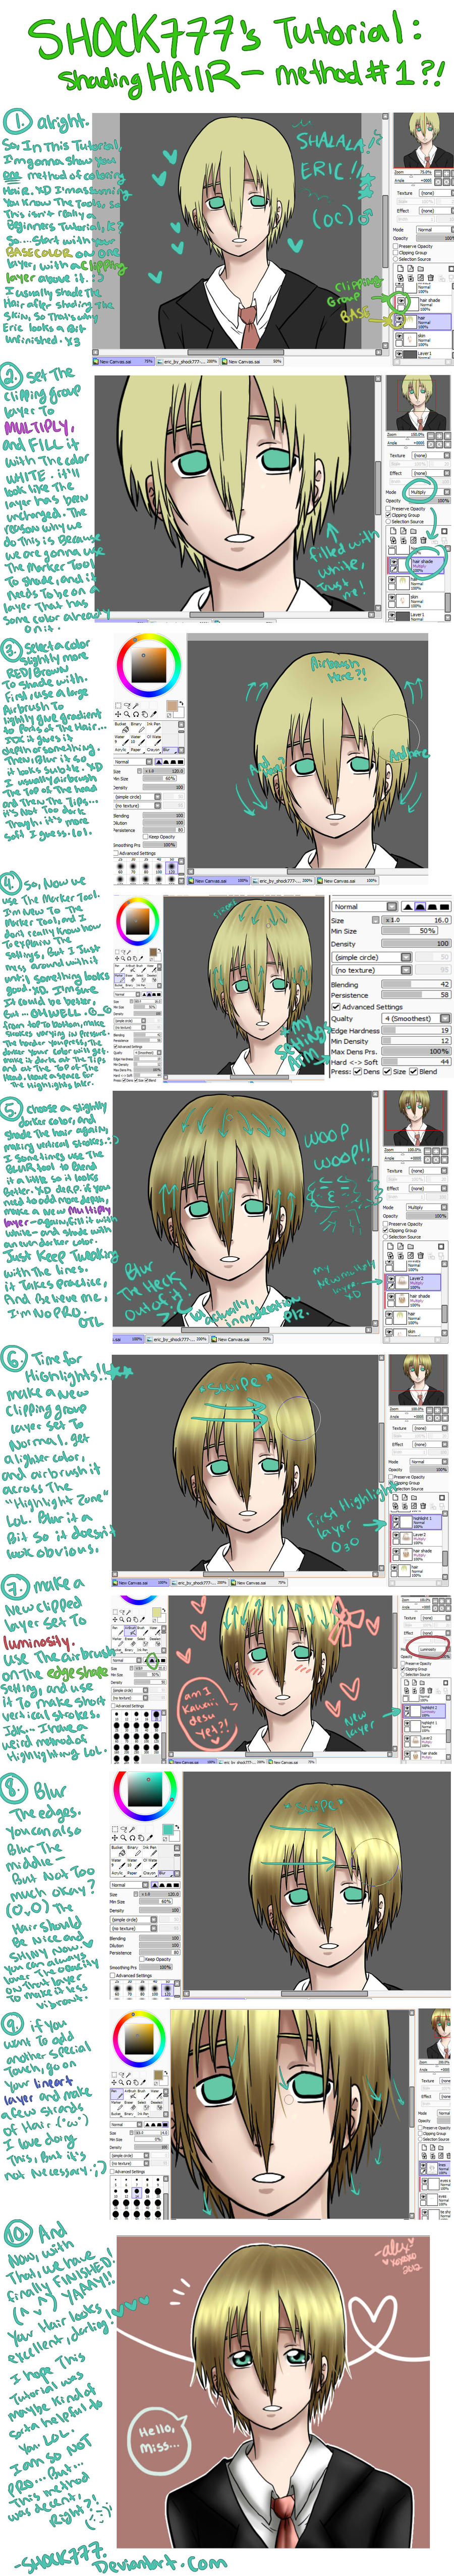 Sai tutorial-Shading Hair method 1 by shock777